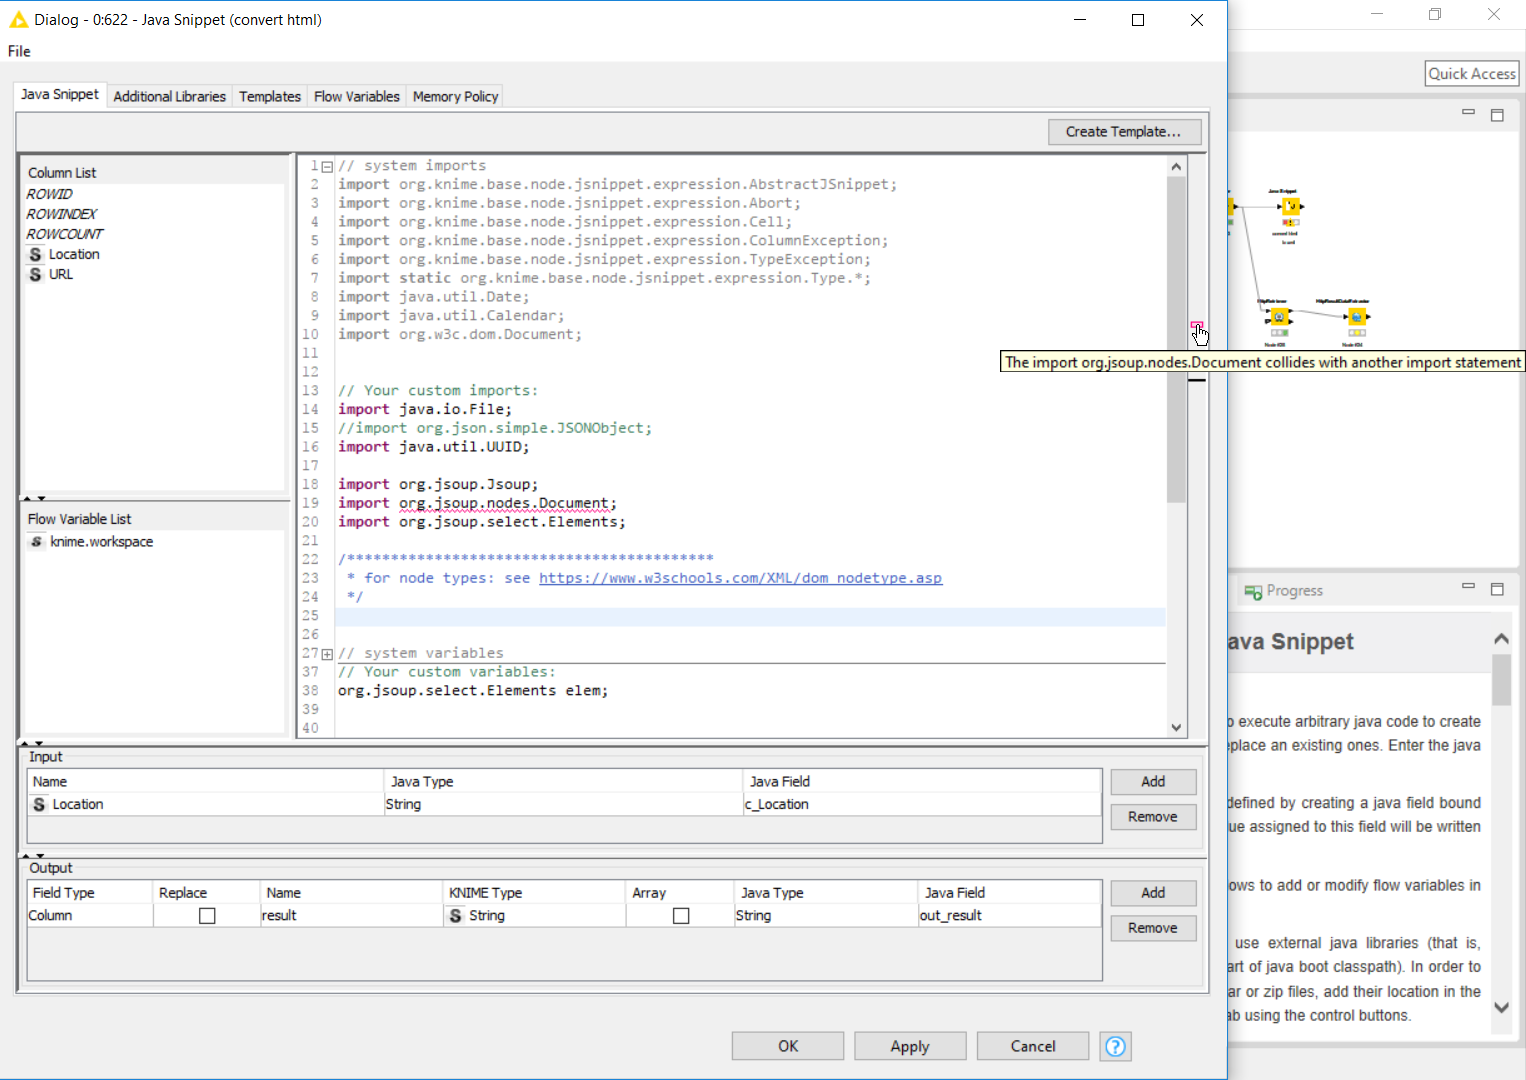 java snippet node import collision with system imports - KNIME